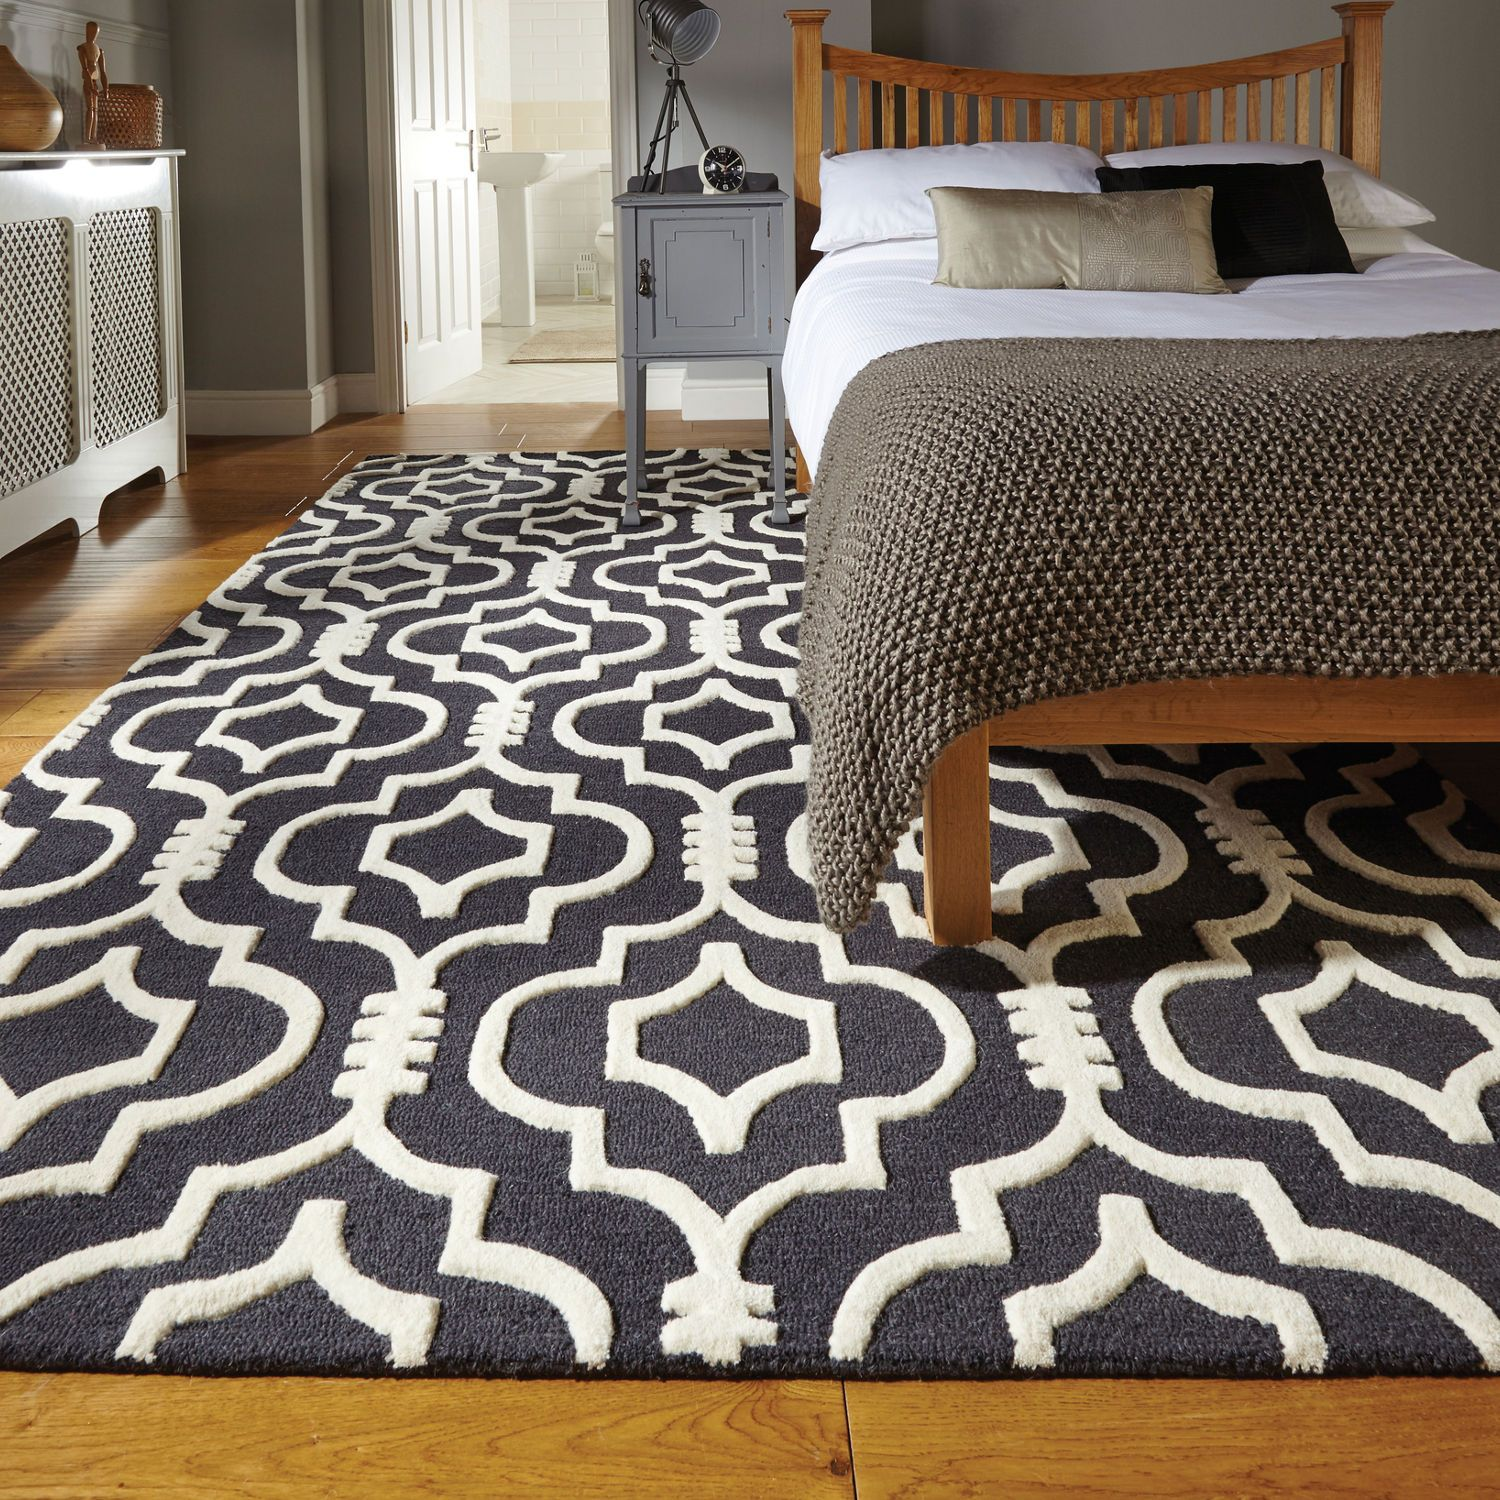 Flair Moorish Morocco Rug In Charcoal Next Day Delivery